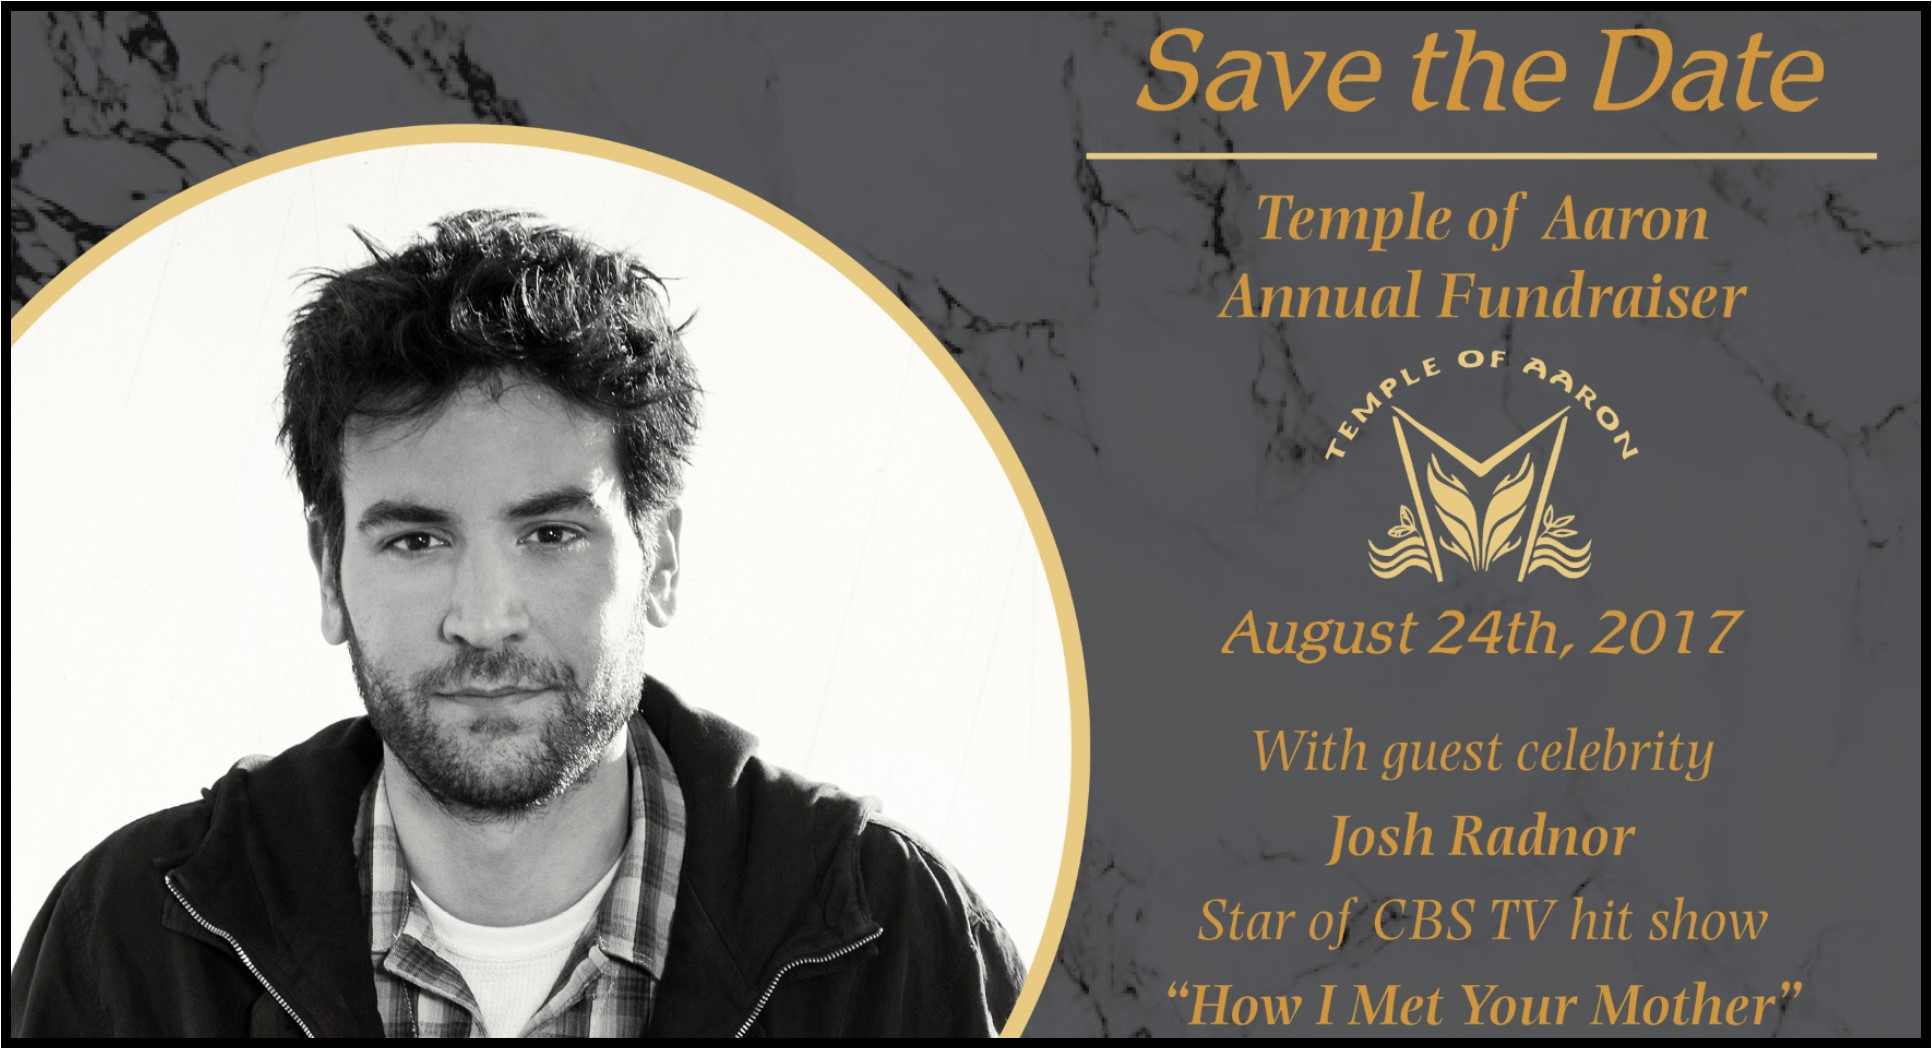 Josh Radnor at Temple of Aaron's Annual Fundraiser